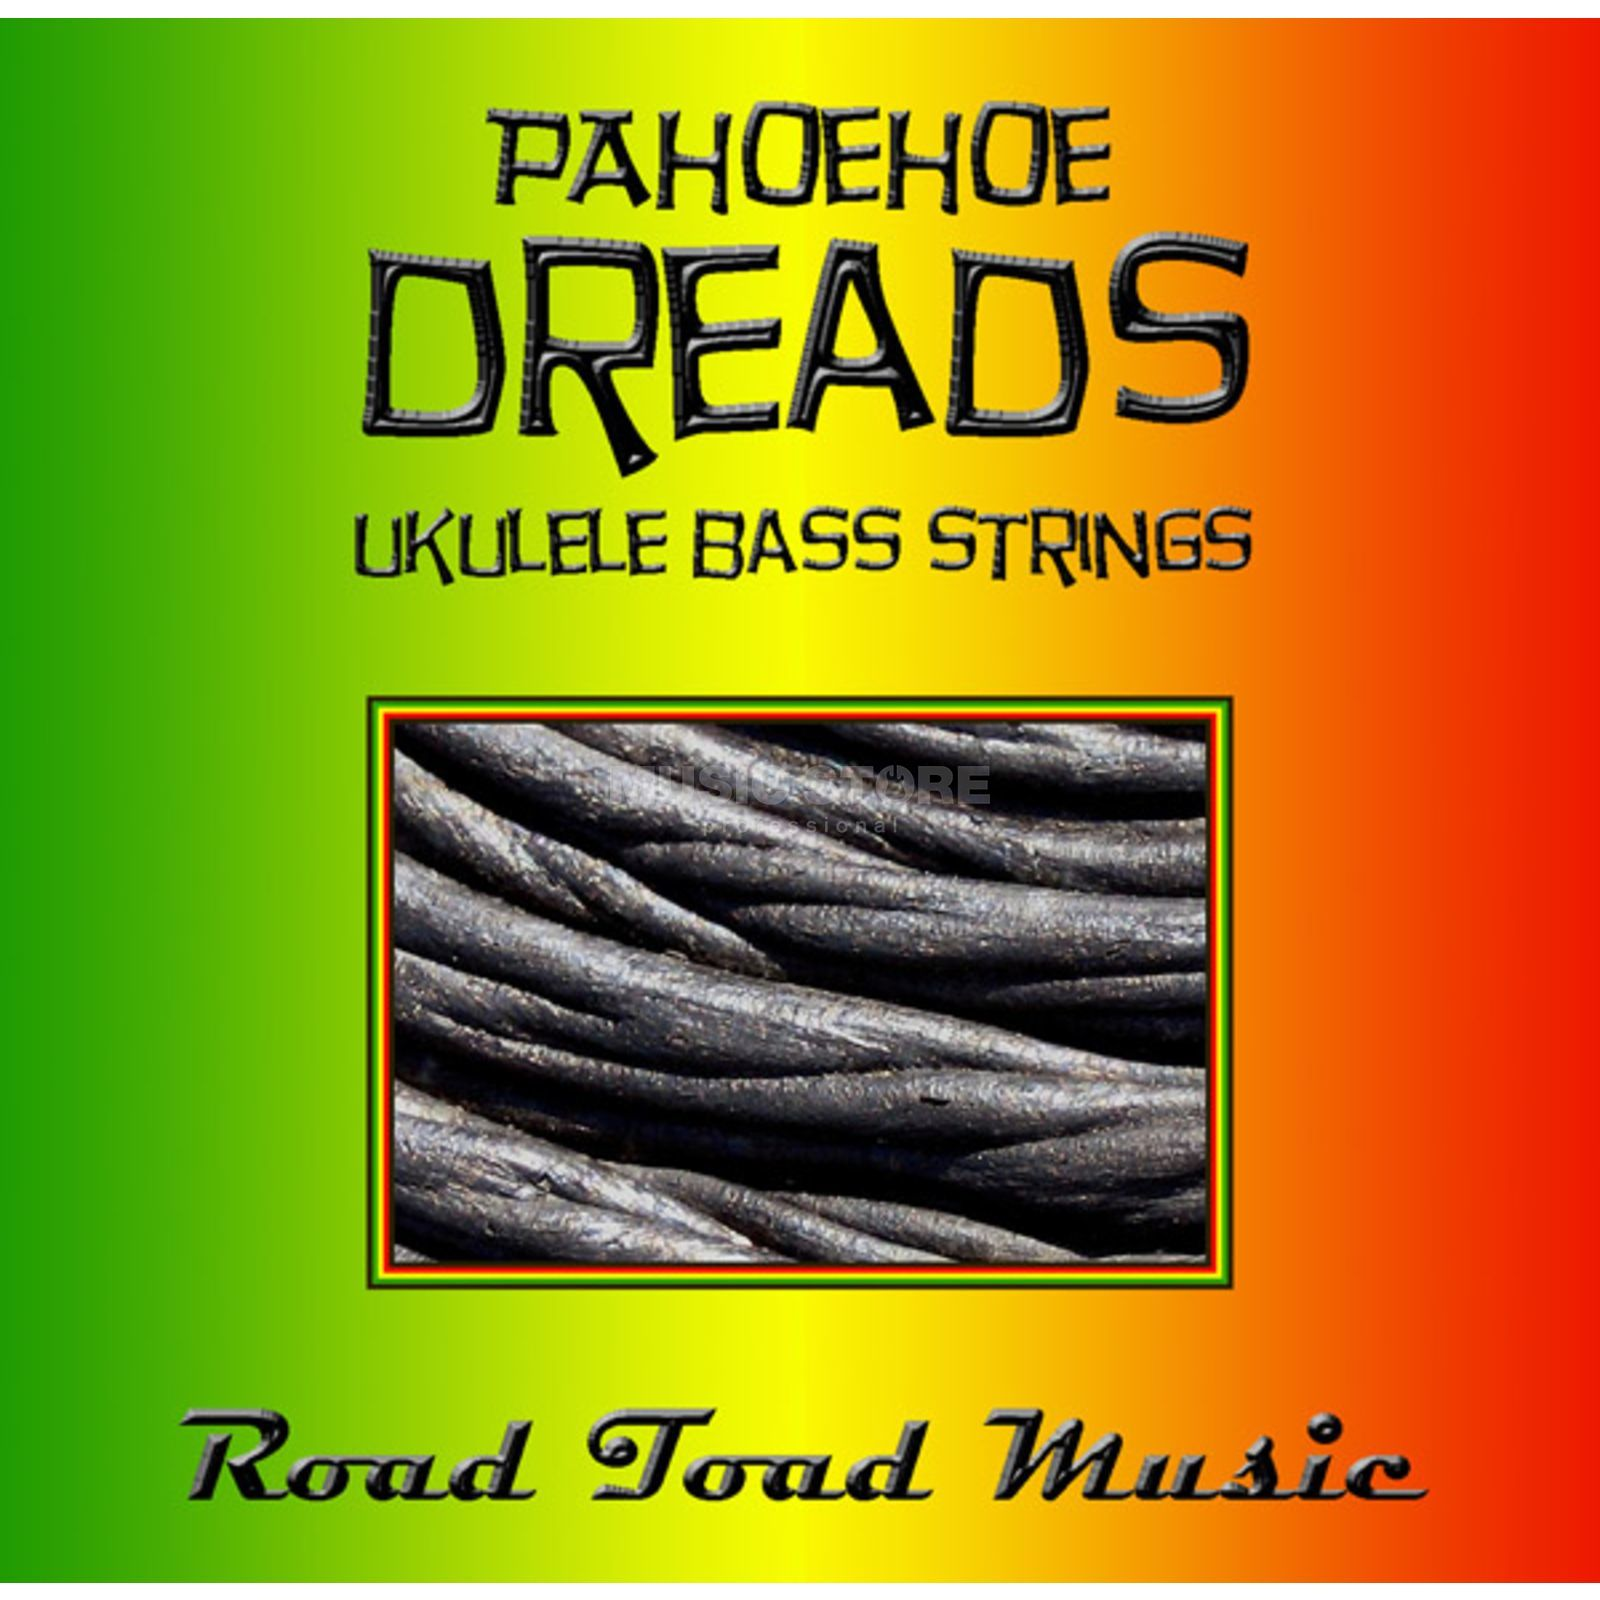 Road Toad Music U-Bass Pahoehoe Dread 4-String Black,Green,Yellow,Red Produktbillede